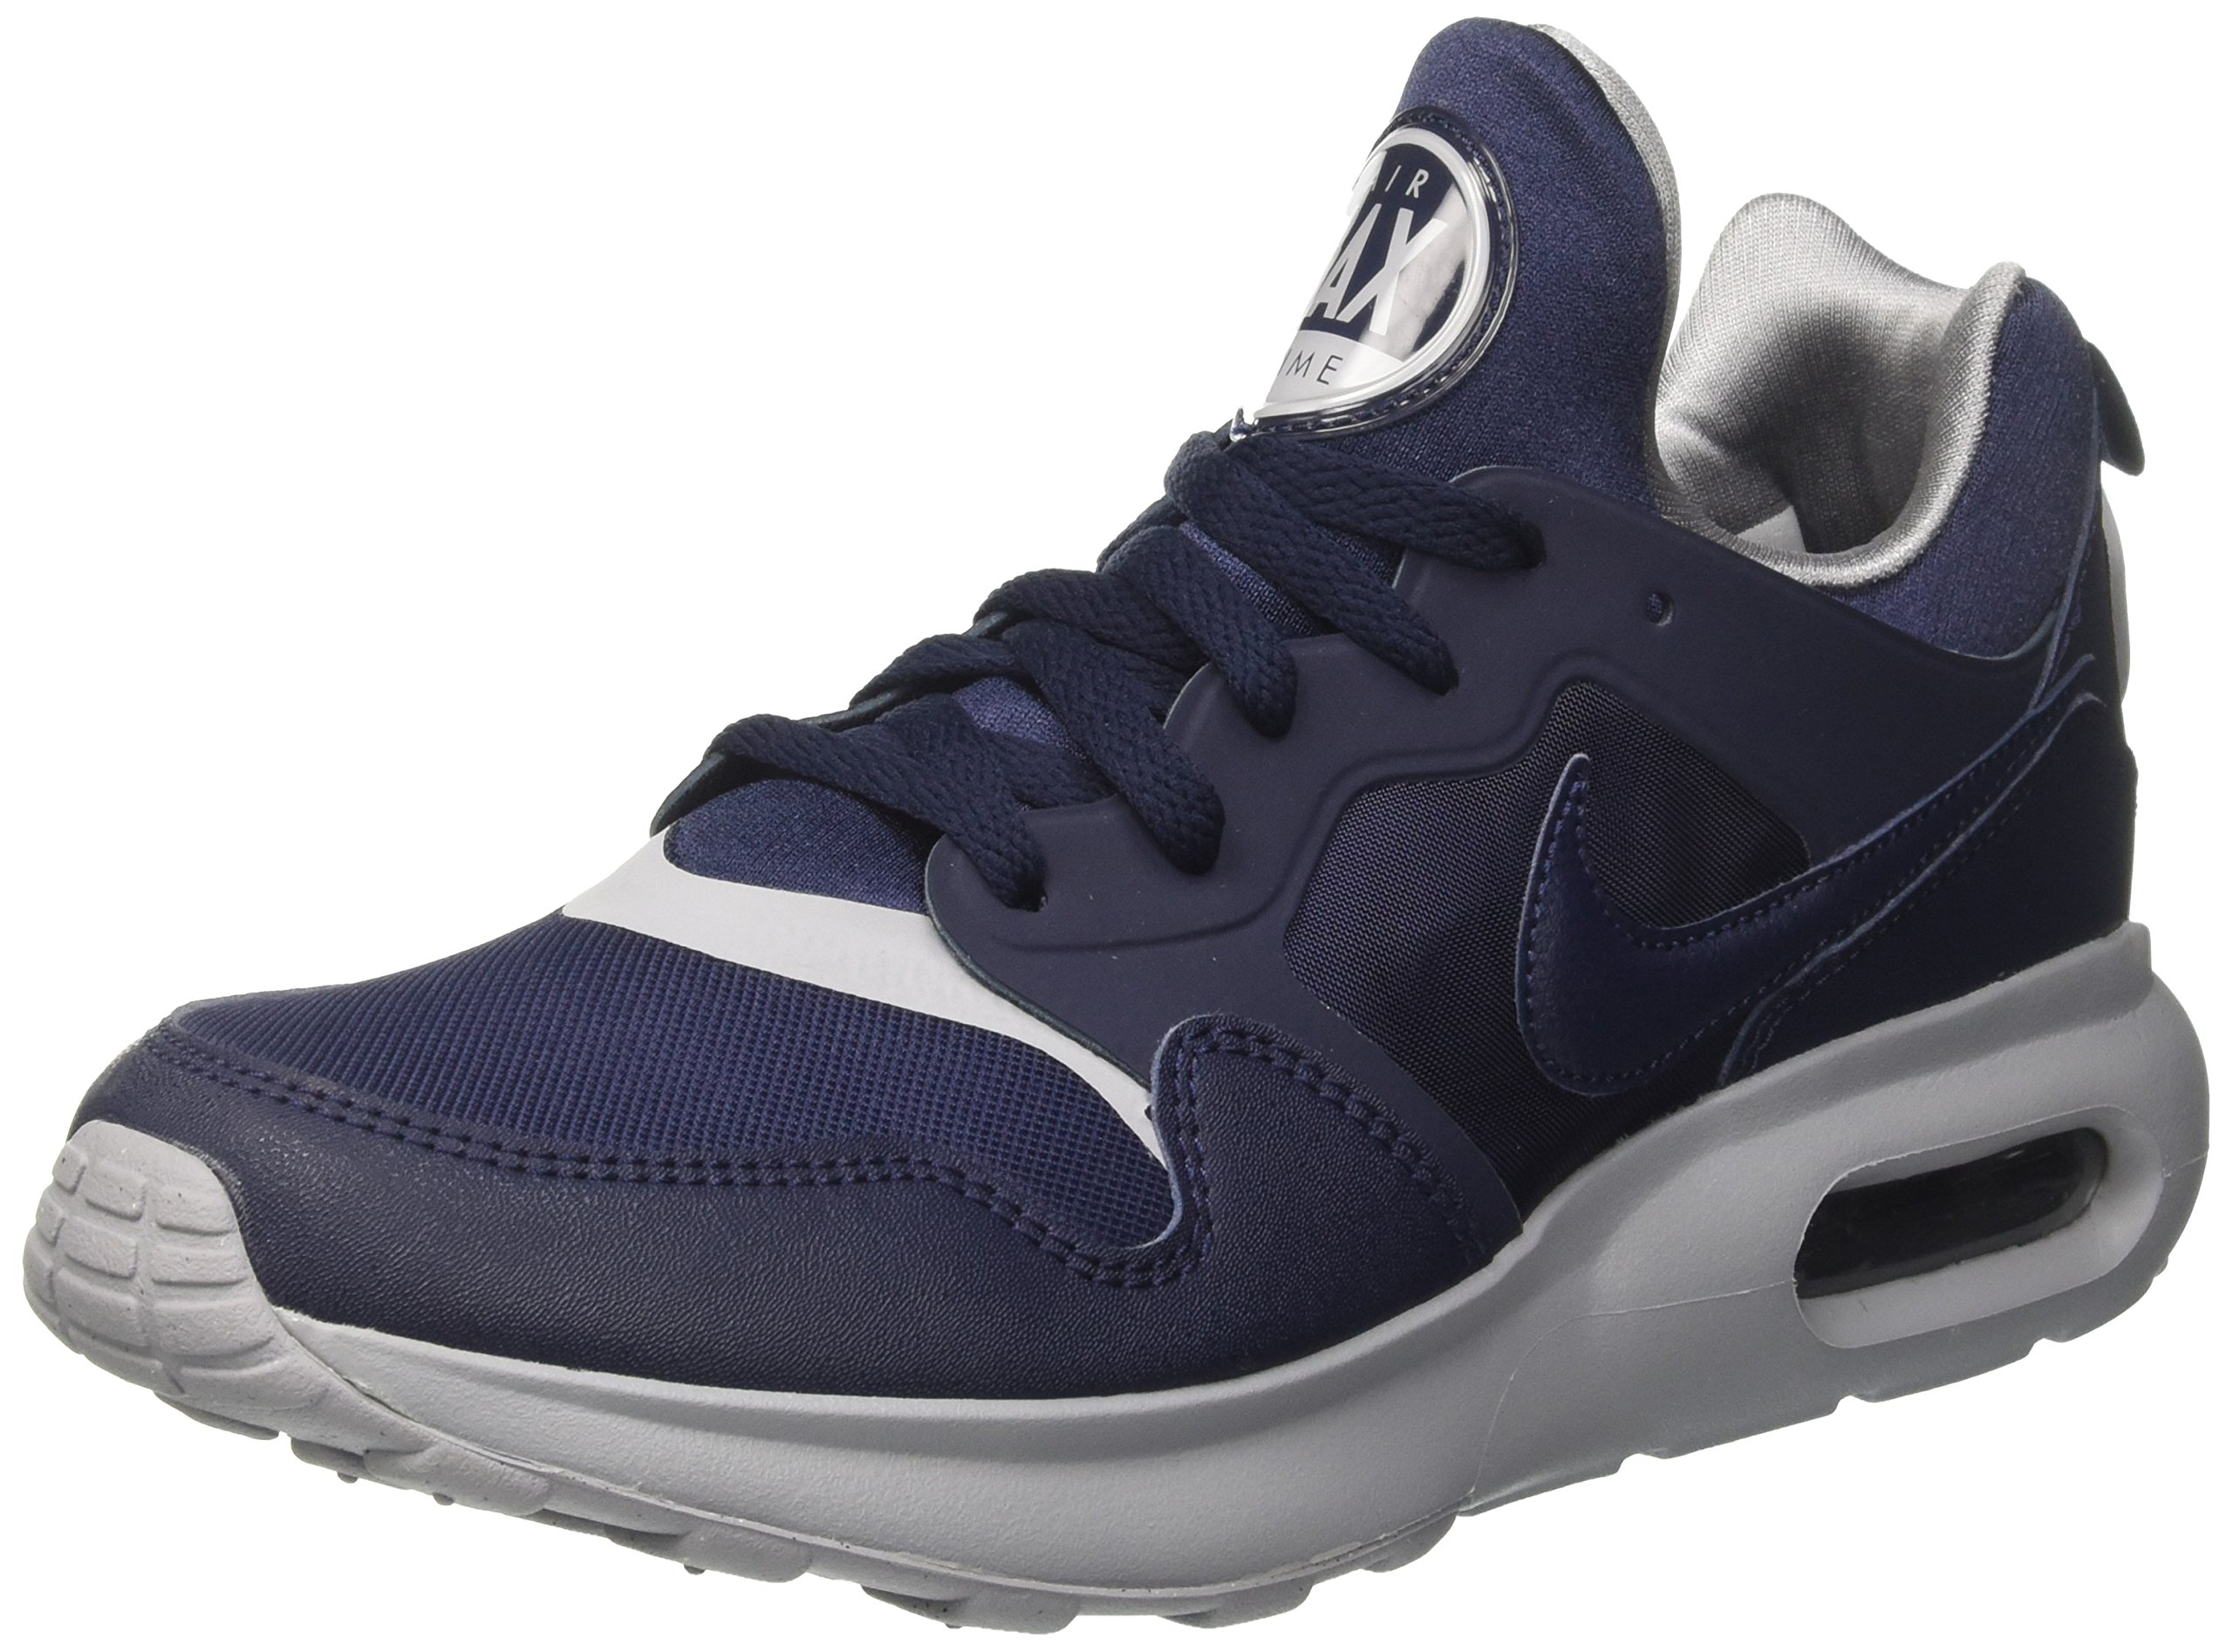 4714e33d60a8 Galleon - Nike Men s Air Max Prime Running Shoe (11 M US